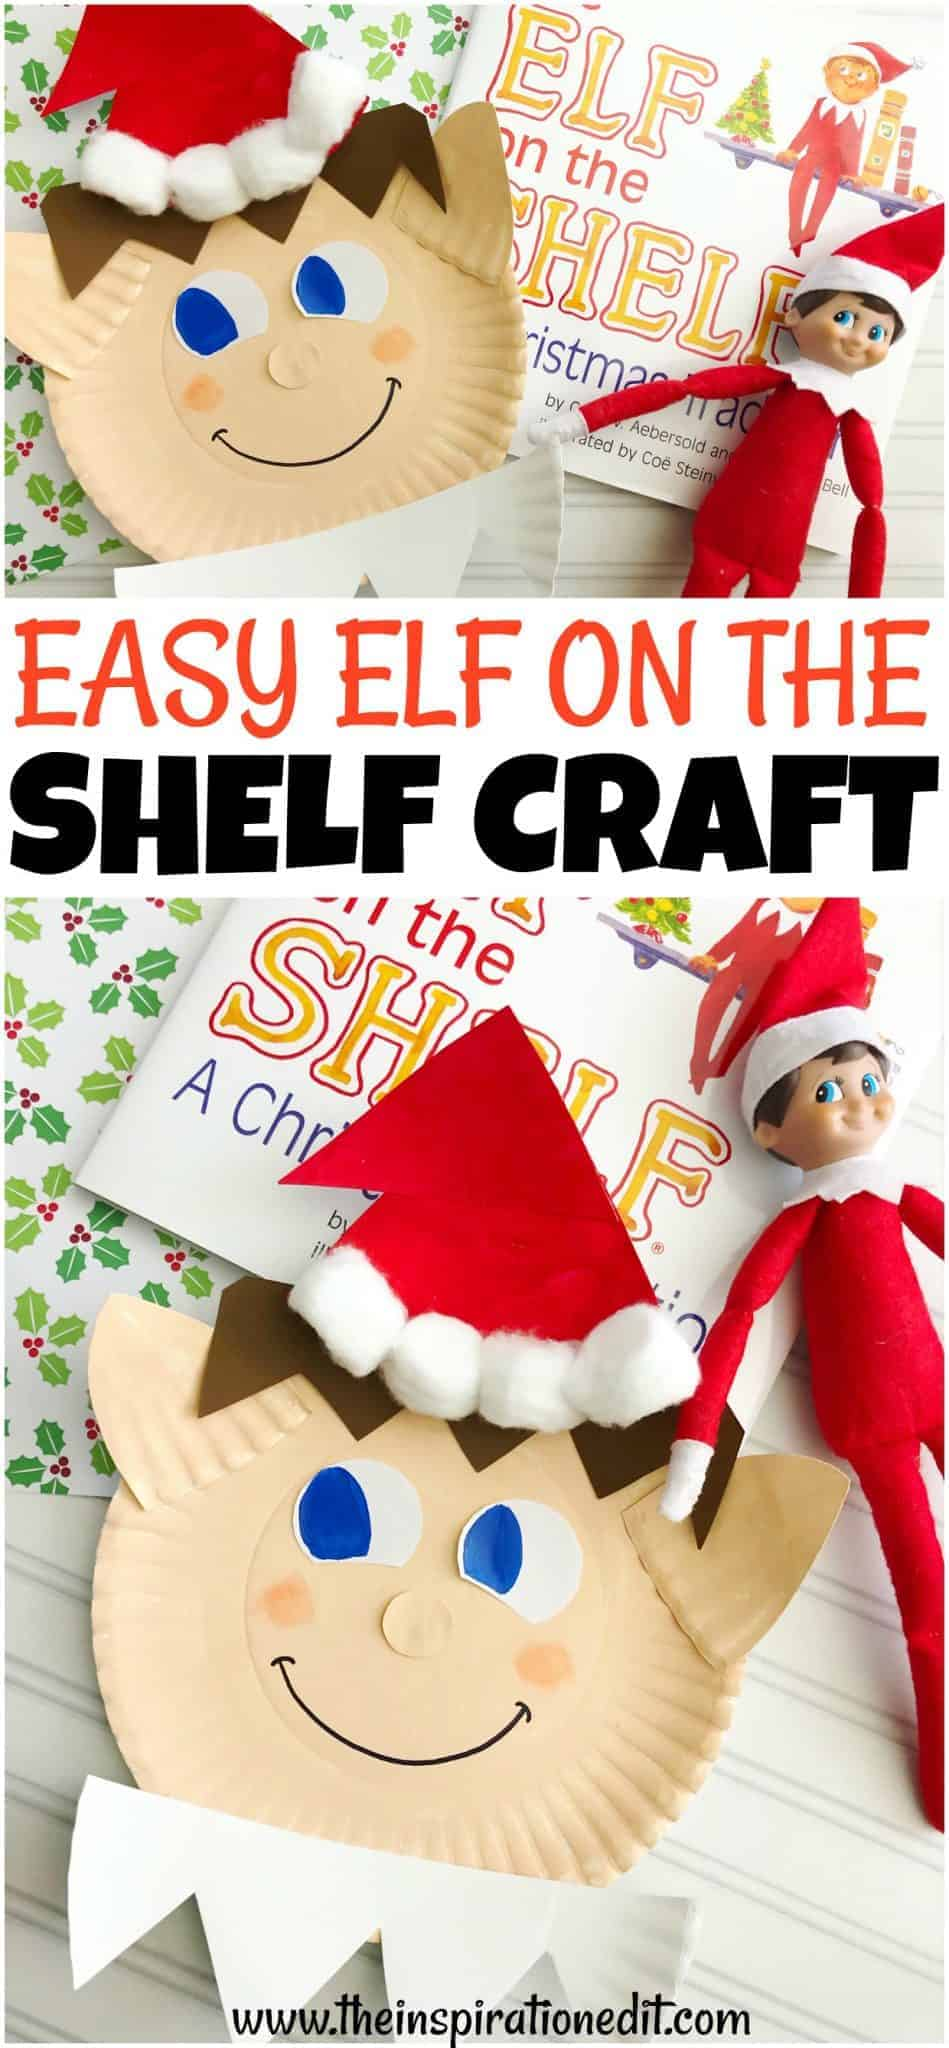 Elf On The Shelf Craft For Kids · The Inspiration Edit in